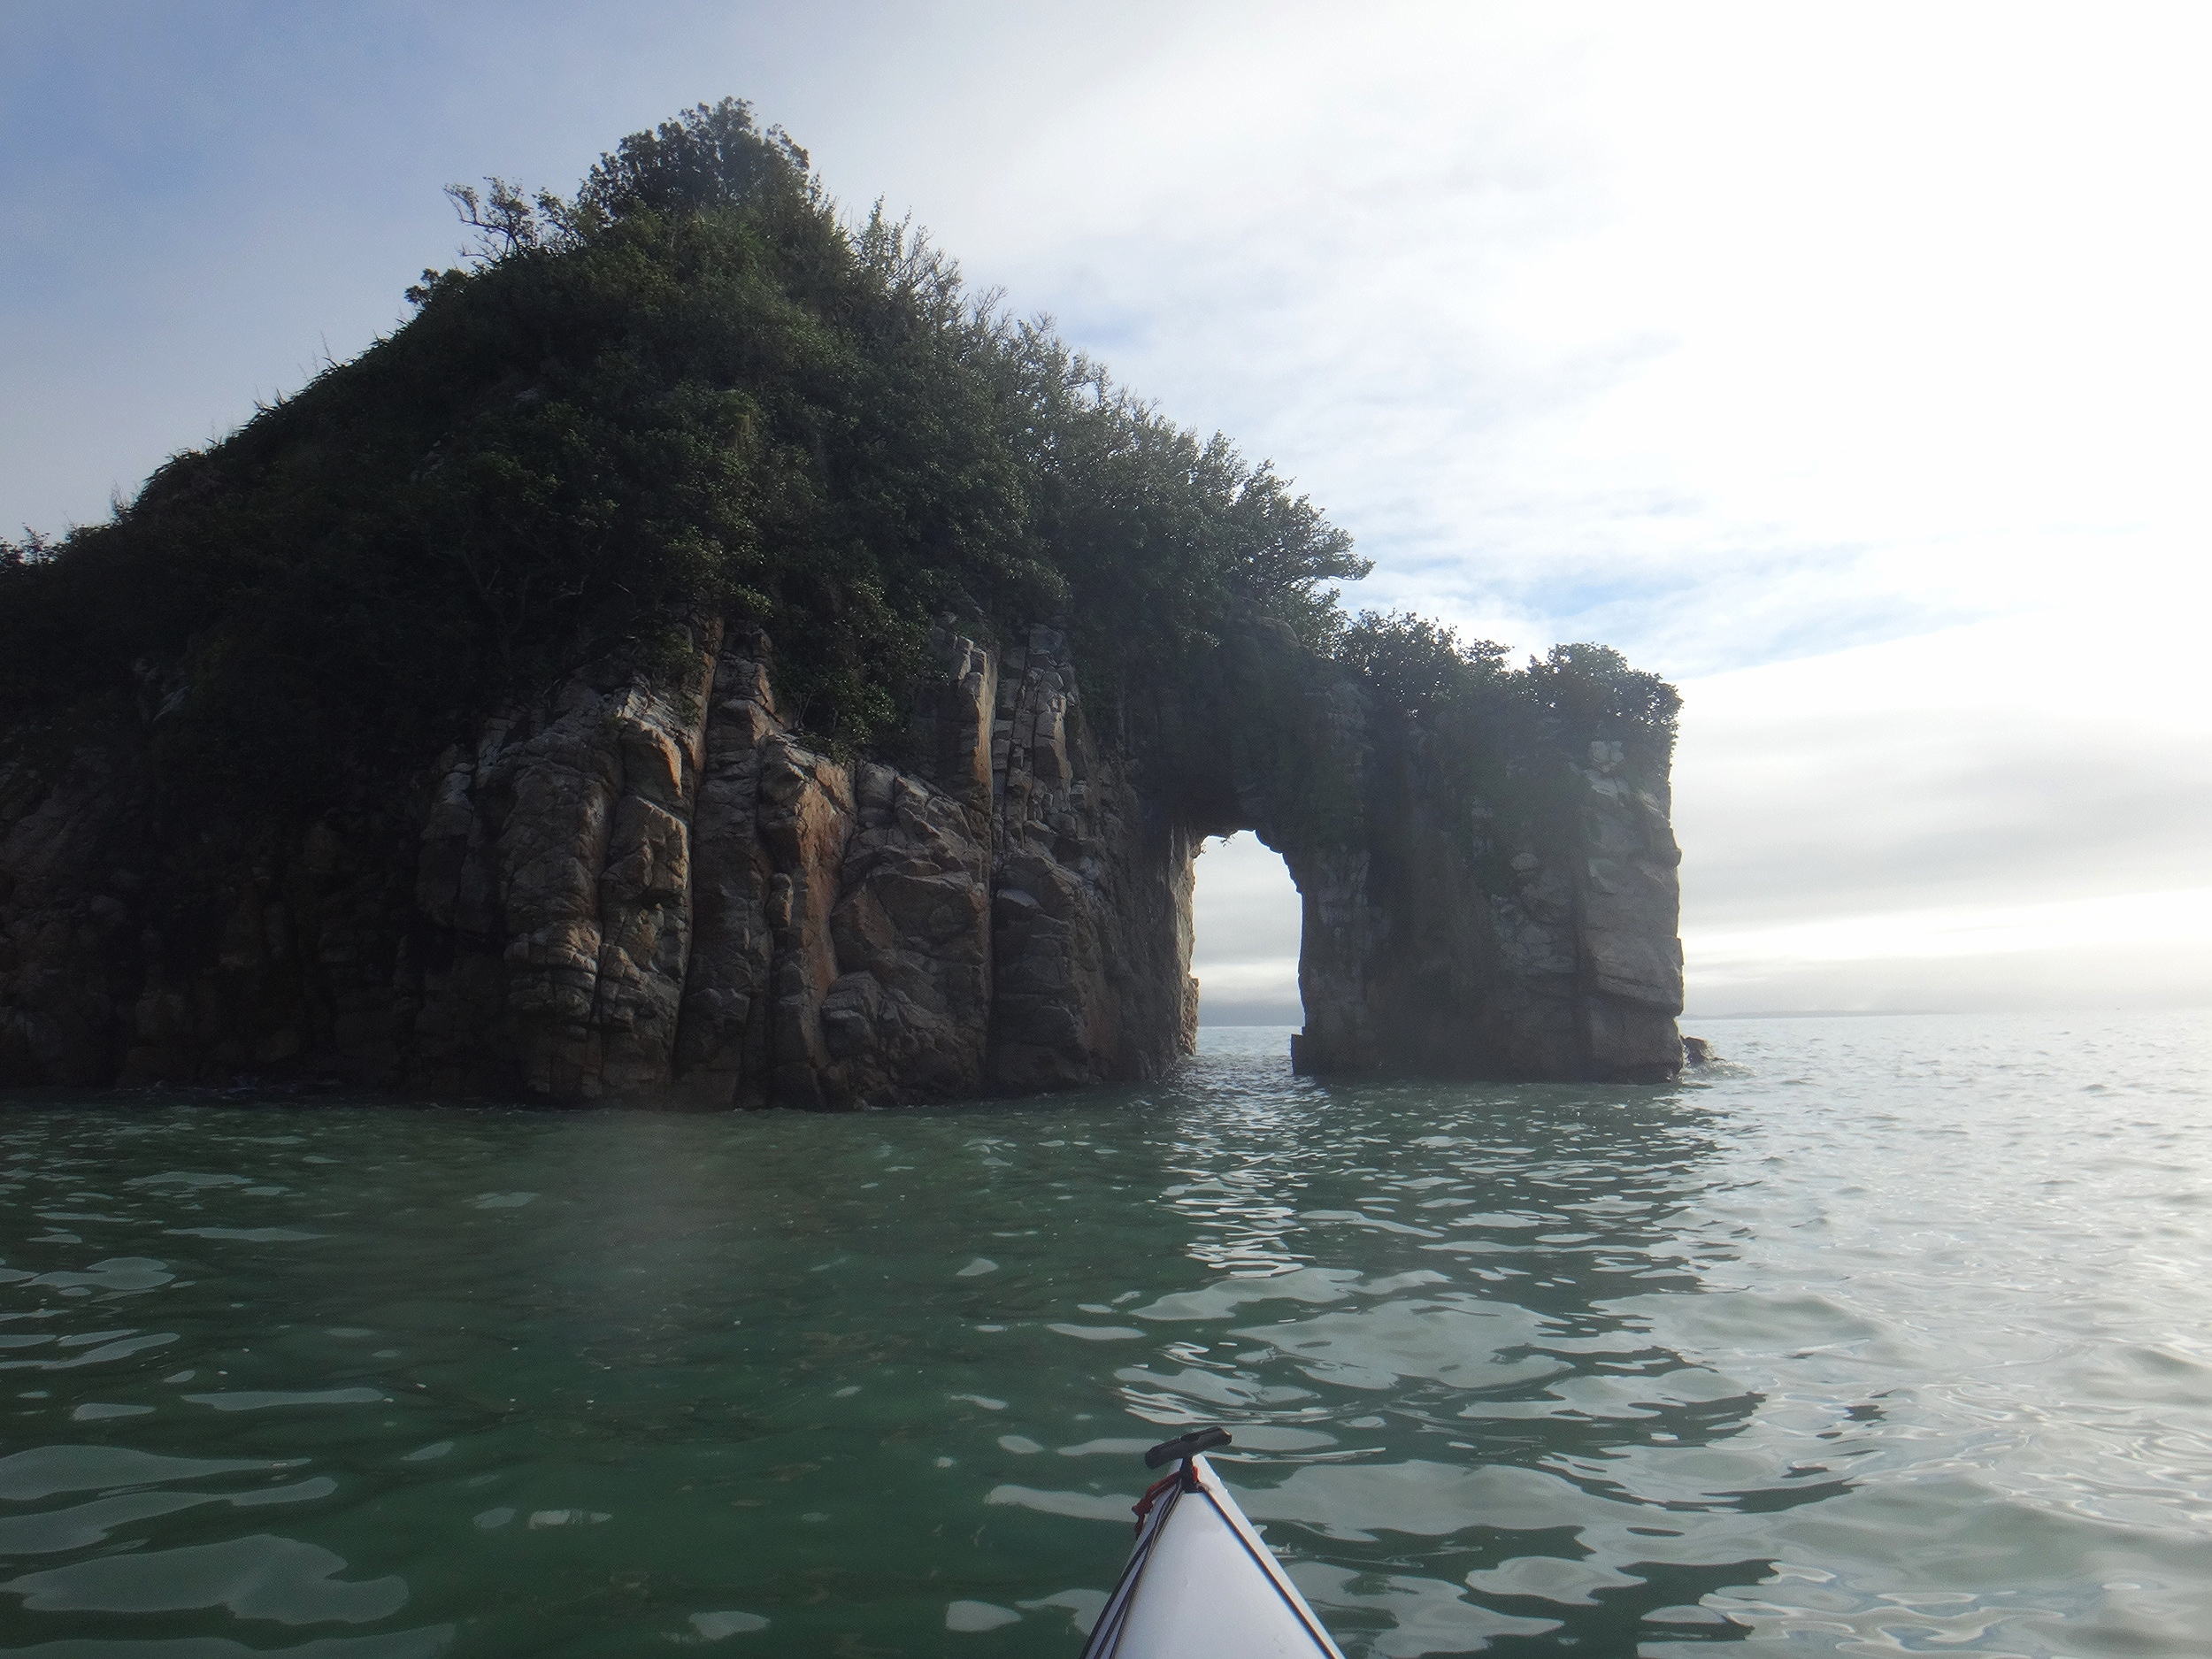 Archways are for paddling through.